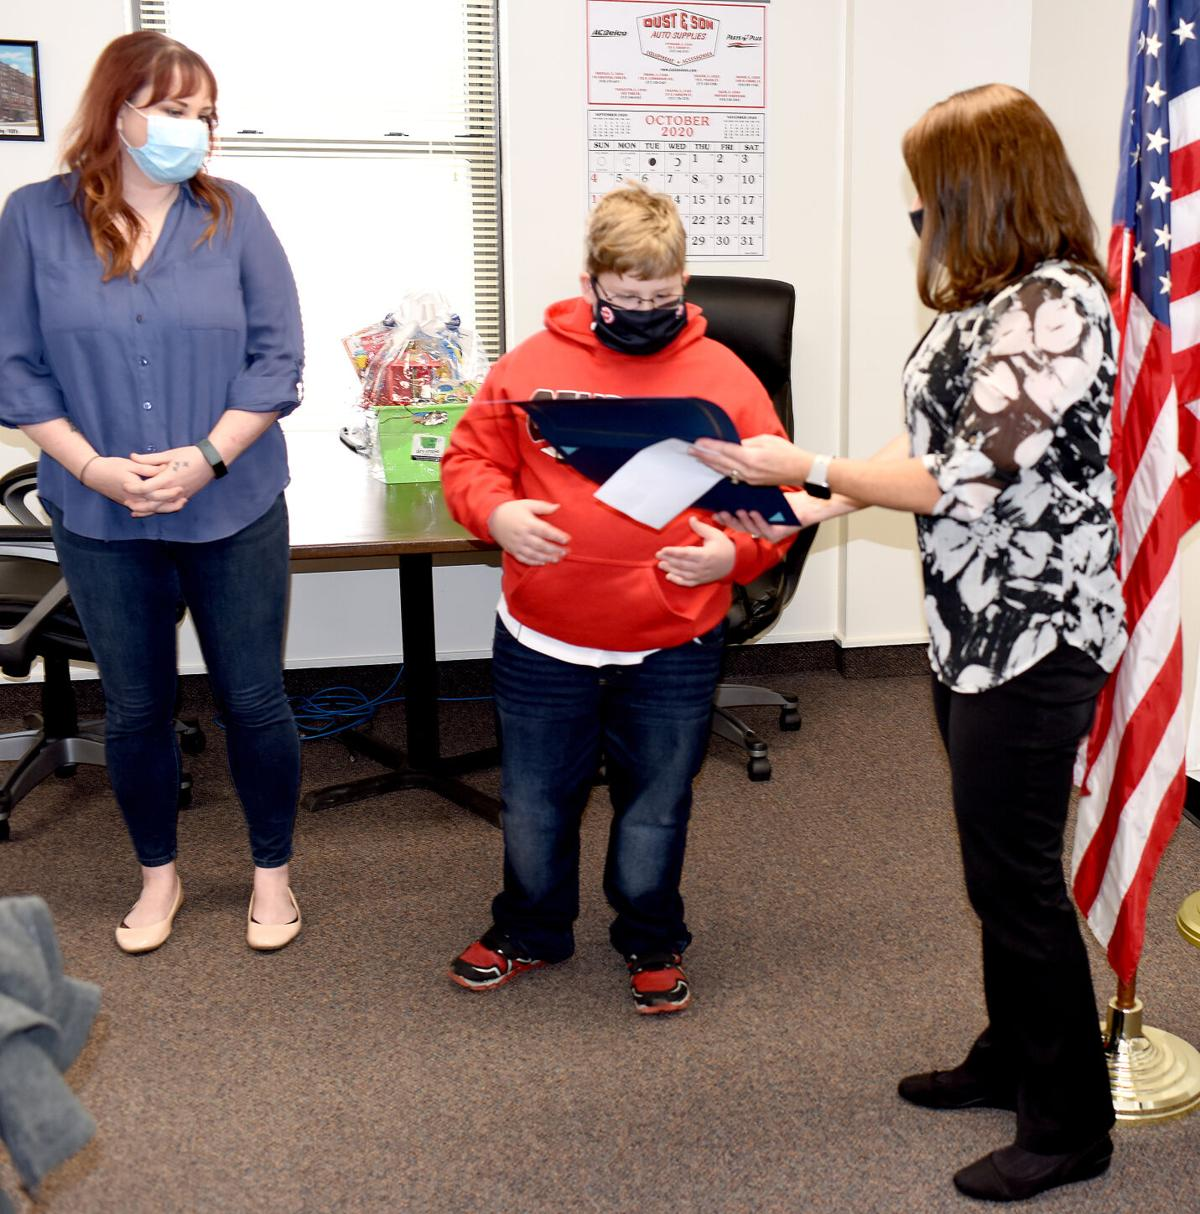 911 Board honors Lucas Grupe Tuesday